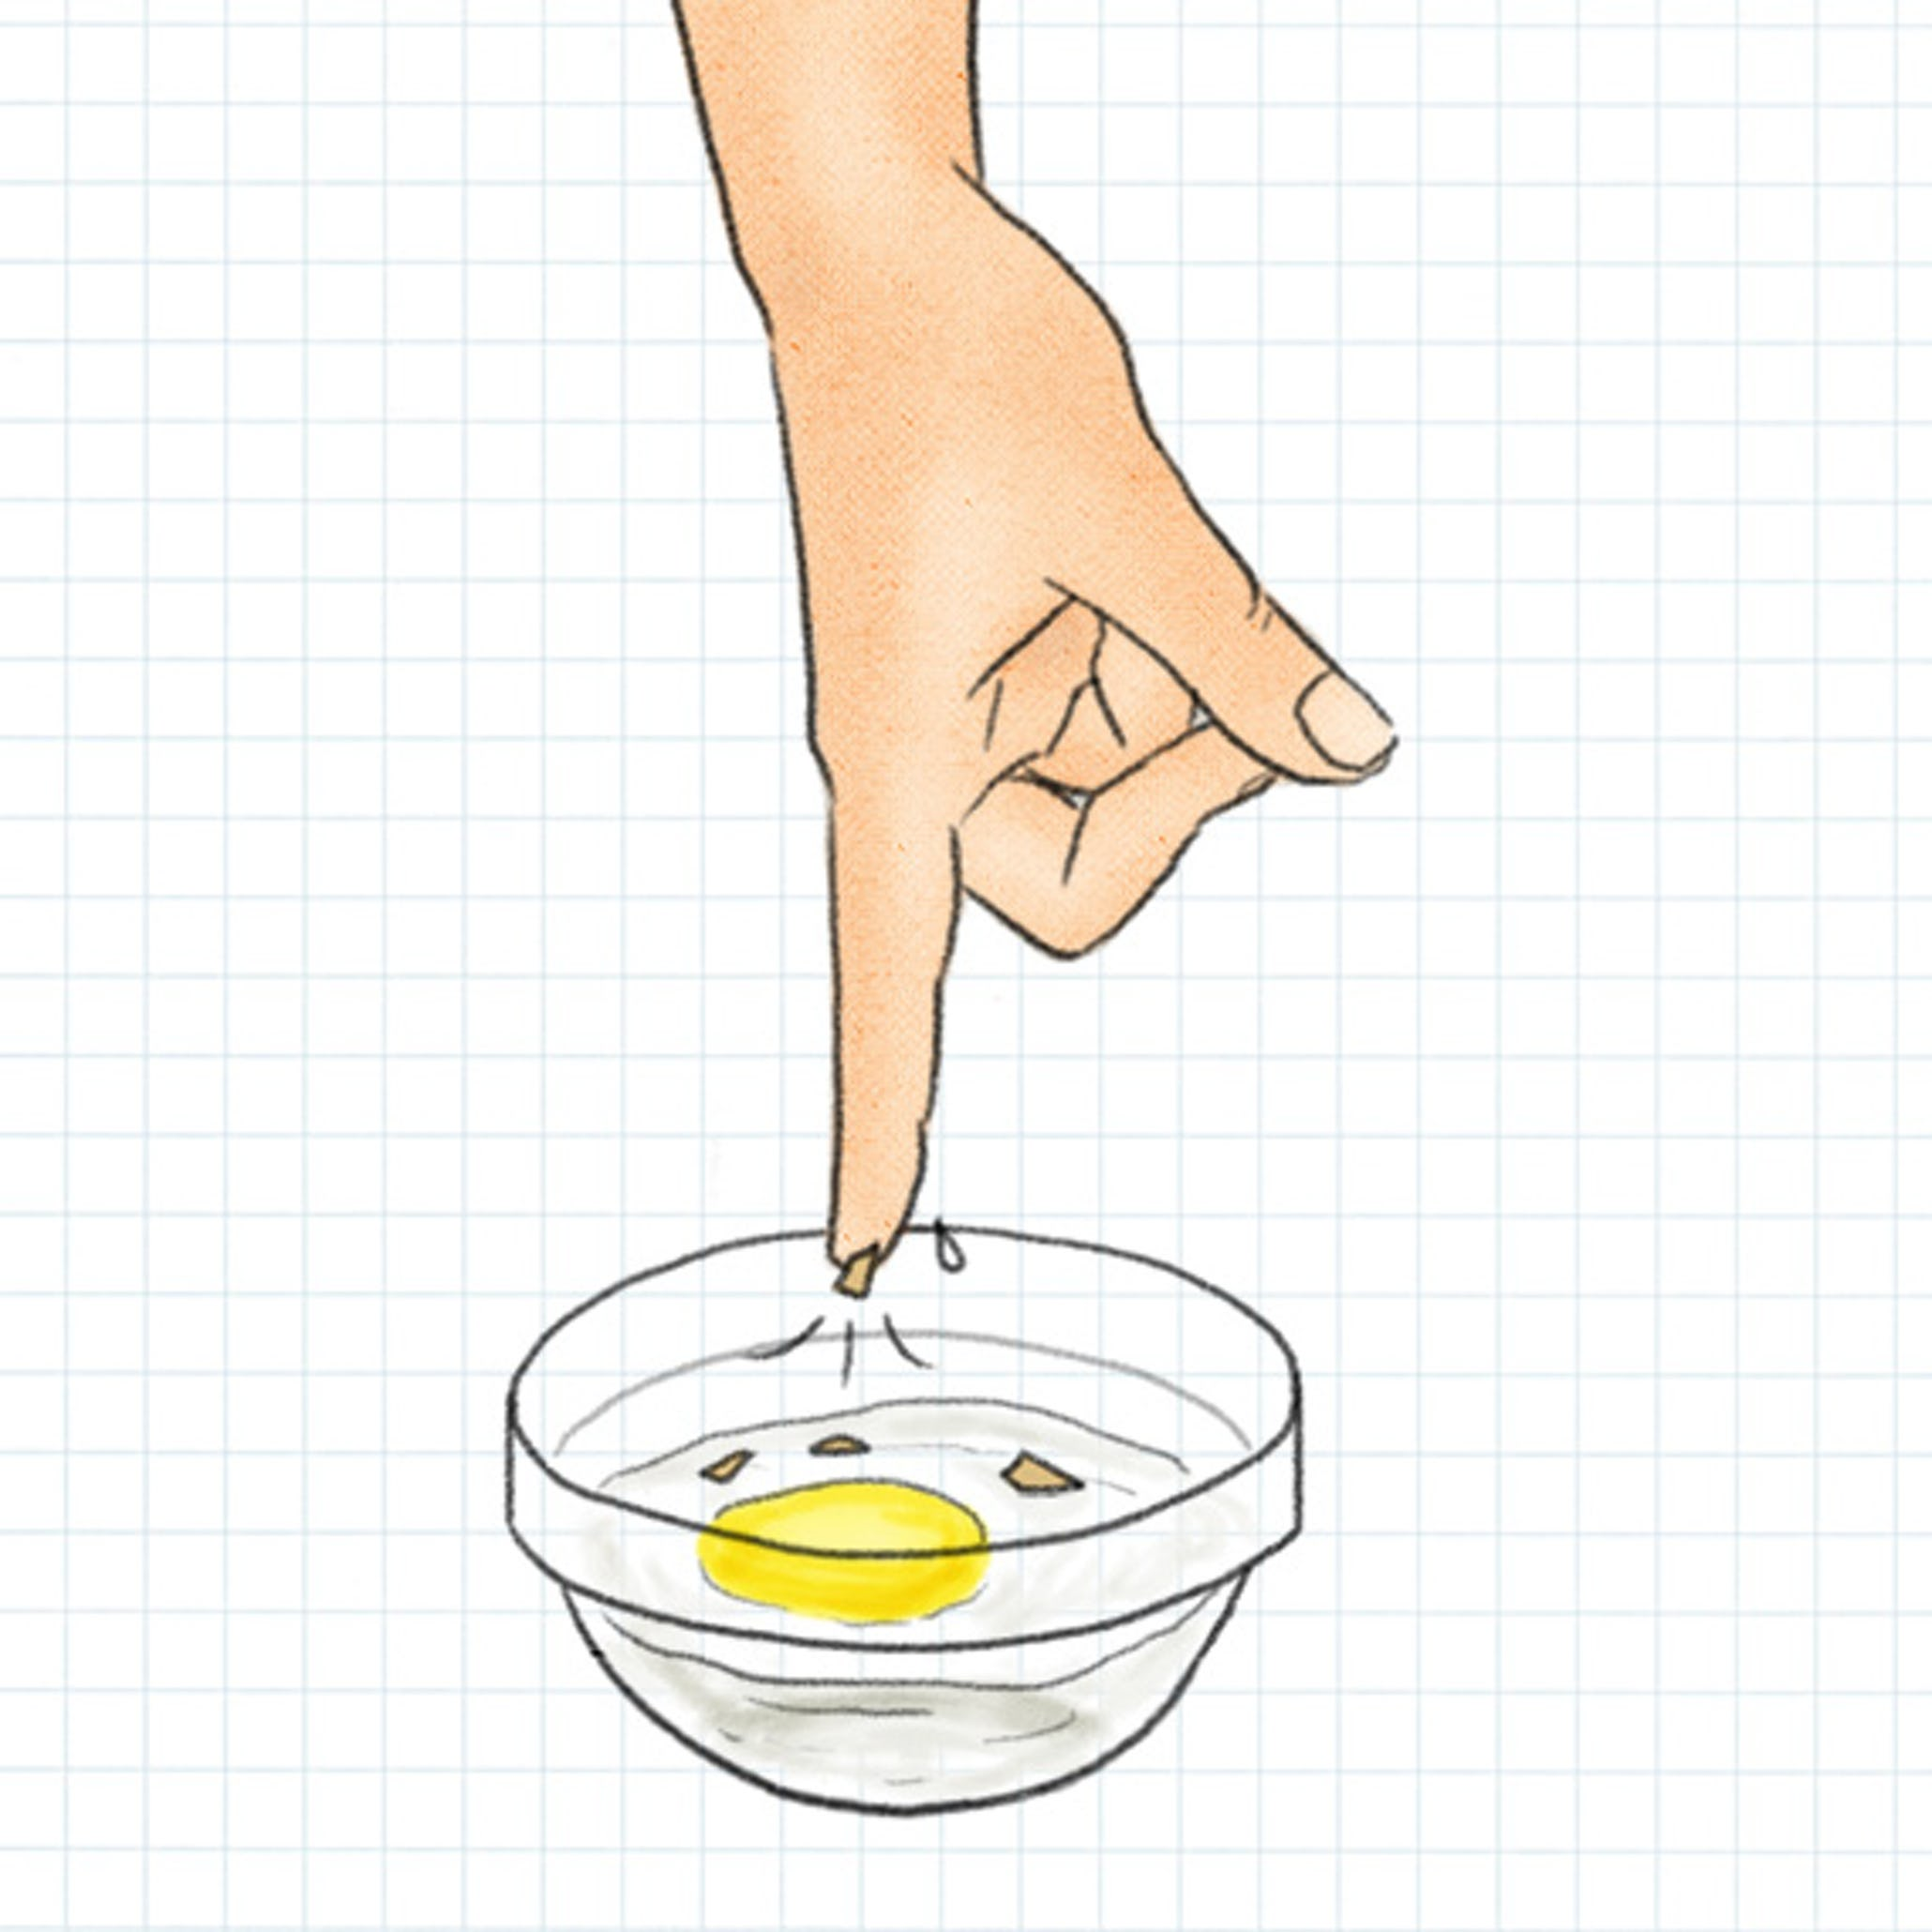 Hack #14: Easily remove eggshell pieces from yolk